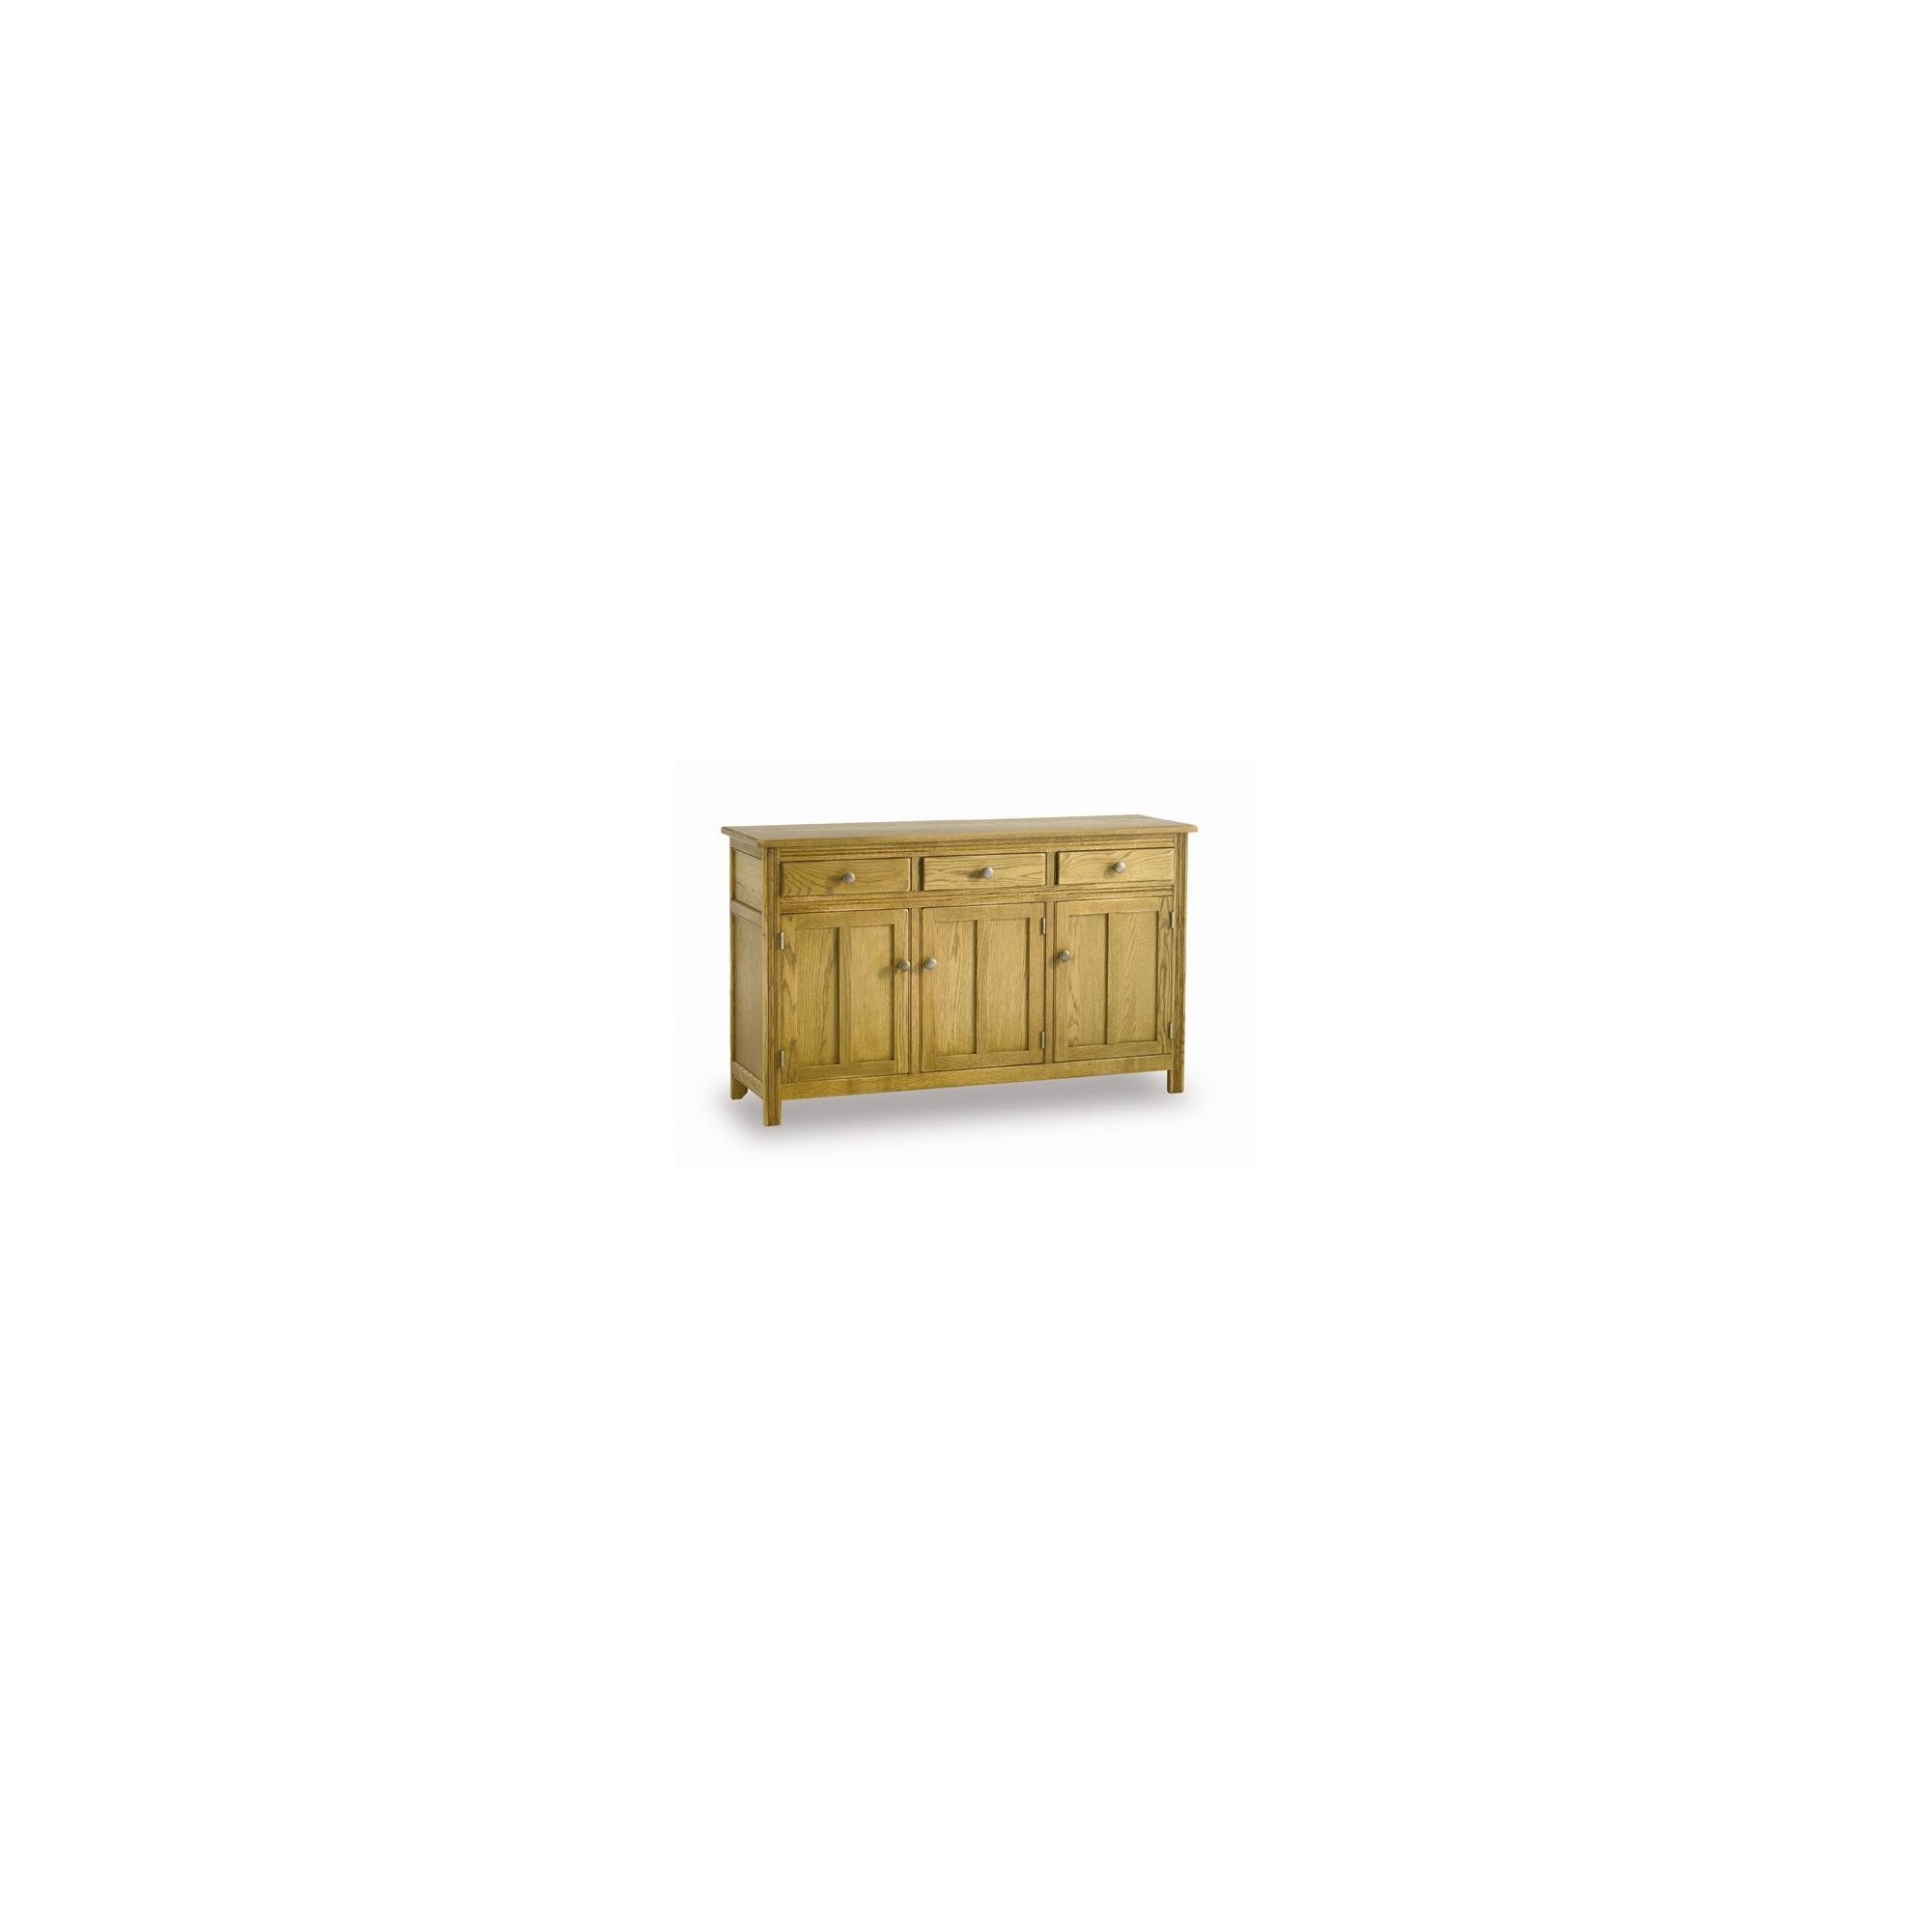 Old Charm Hertford 3 Door Sideboard - Natural at Tesco Direct